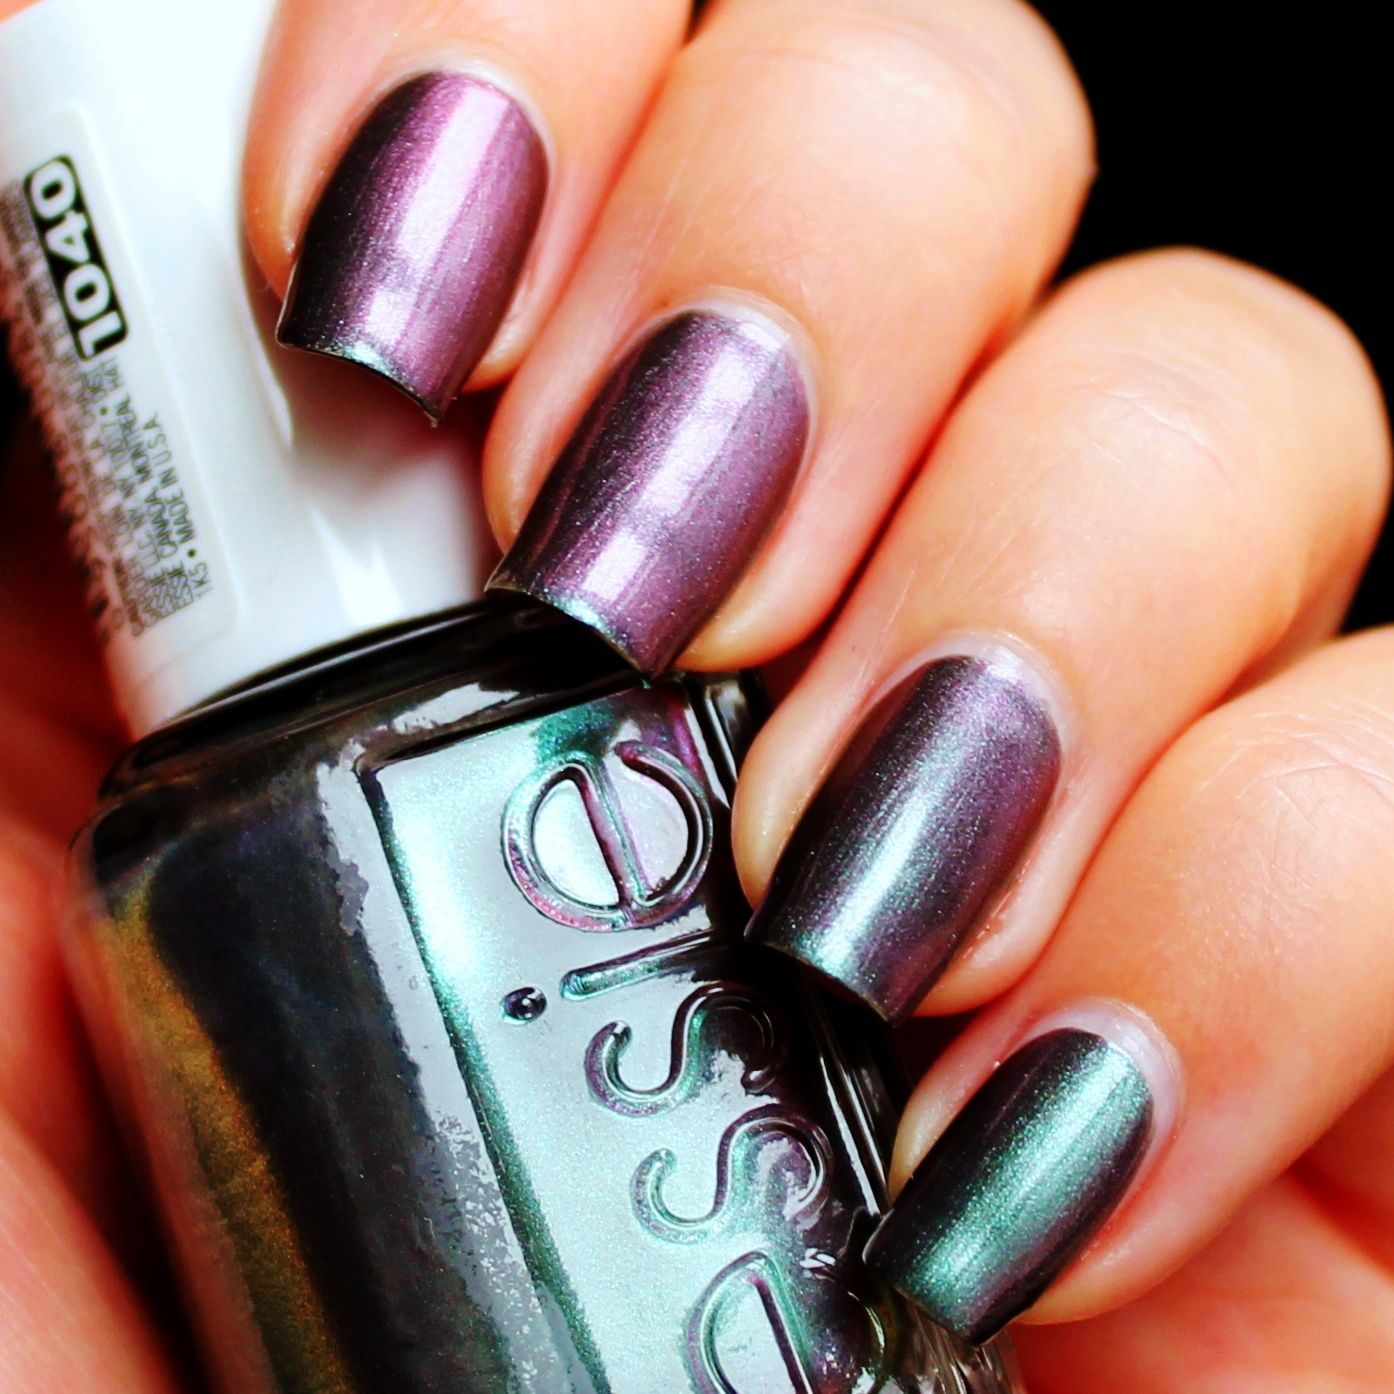 Duri Cosmetics Rejuvacote / Essie For The Twill of It / Poshe Top Coat